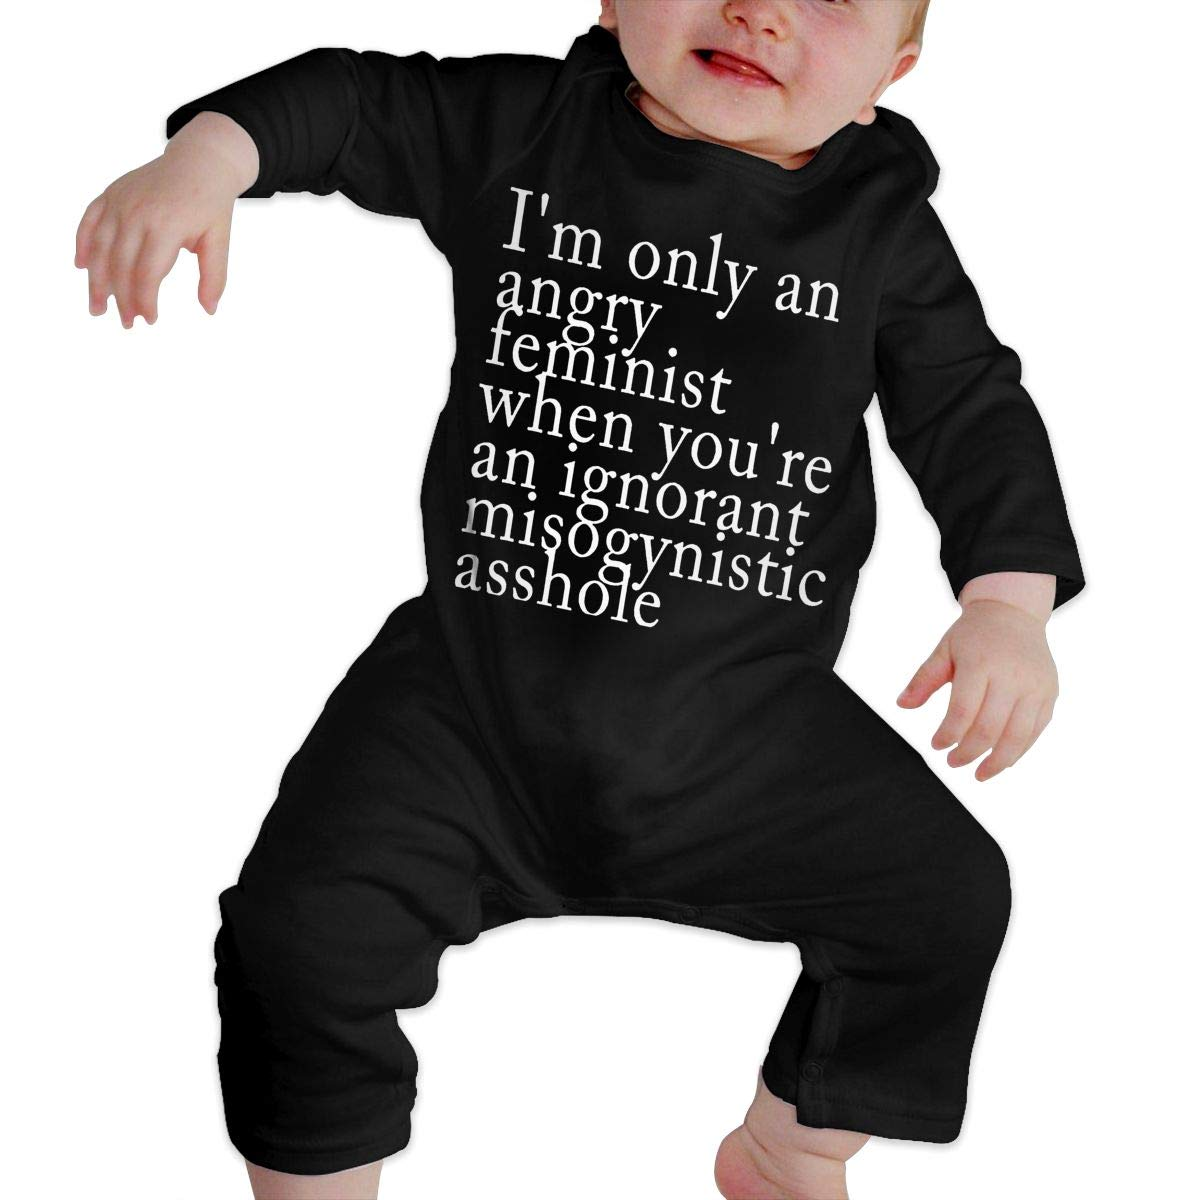 KAYERDELLE Angry Feminist Crewneck Long Sleeve Unisex Baby Playsuit for 6-24 Months Infant